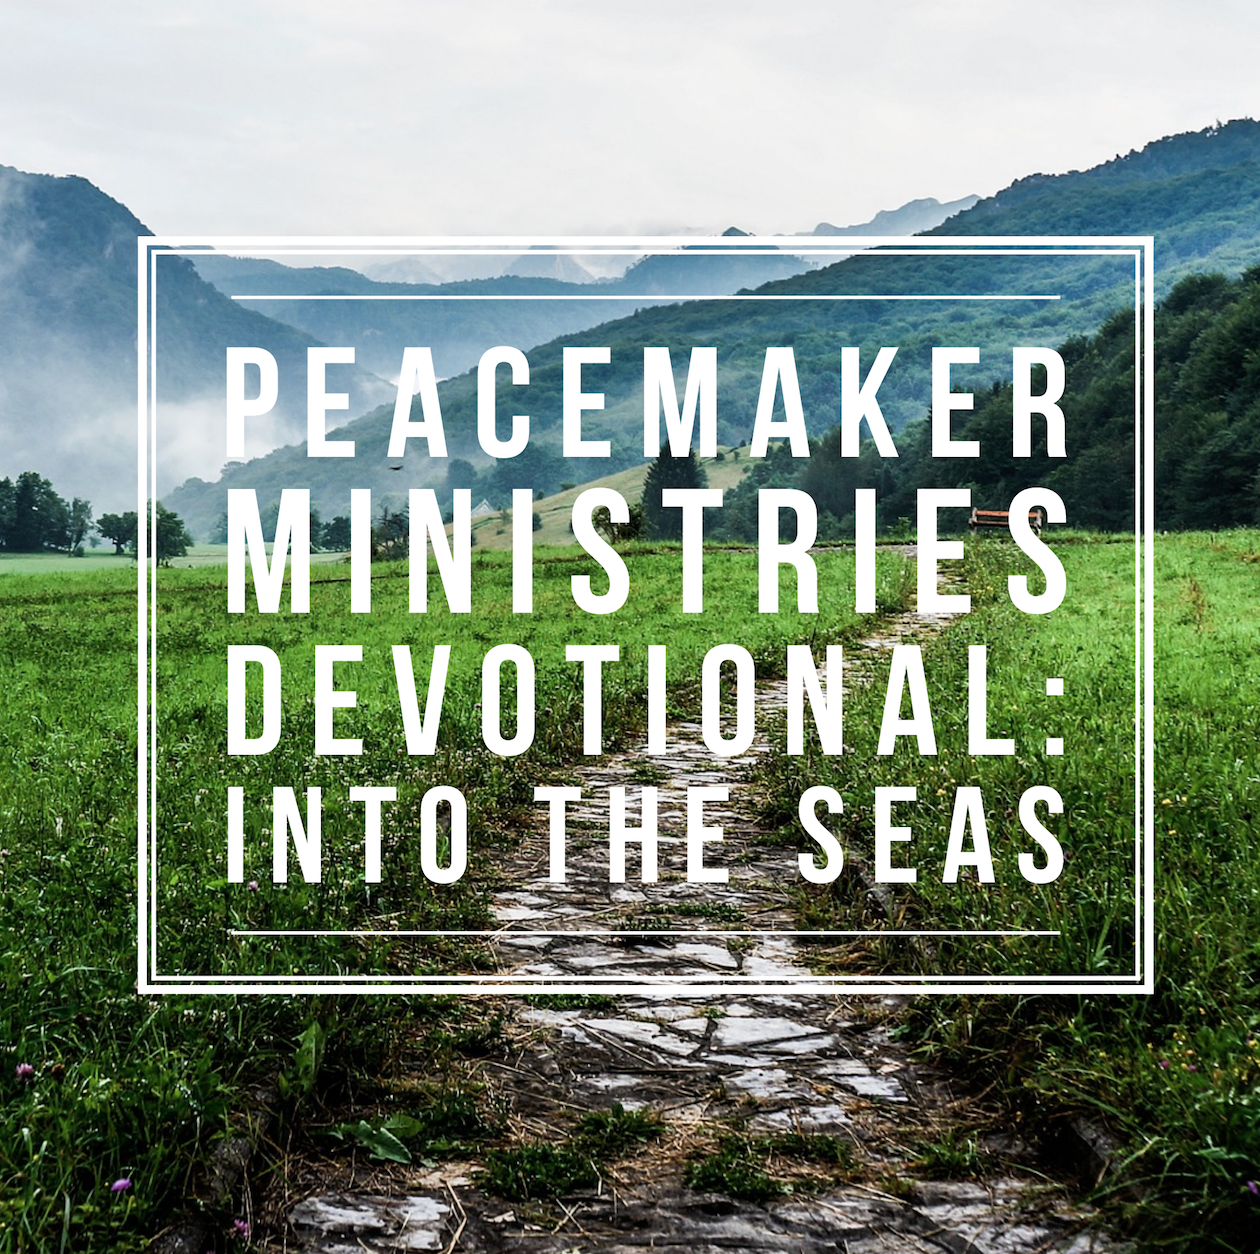 Peacemaker Ministries Devotional: Into The Seas